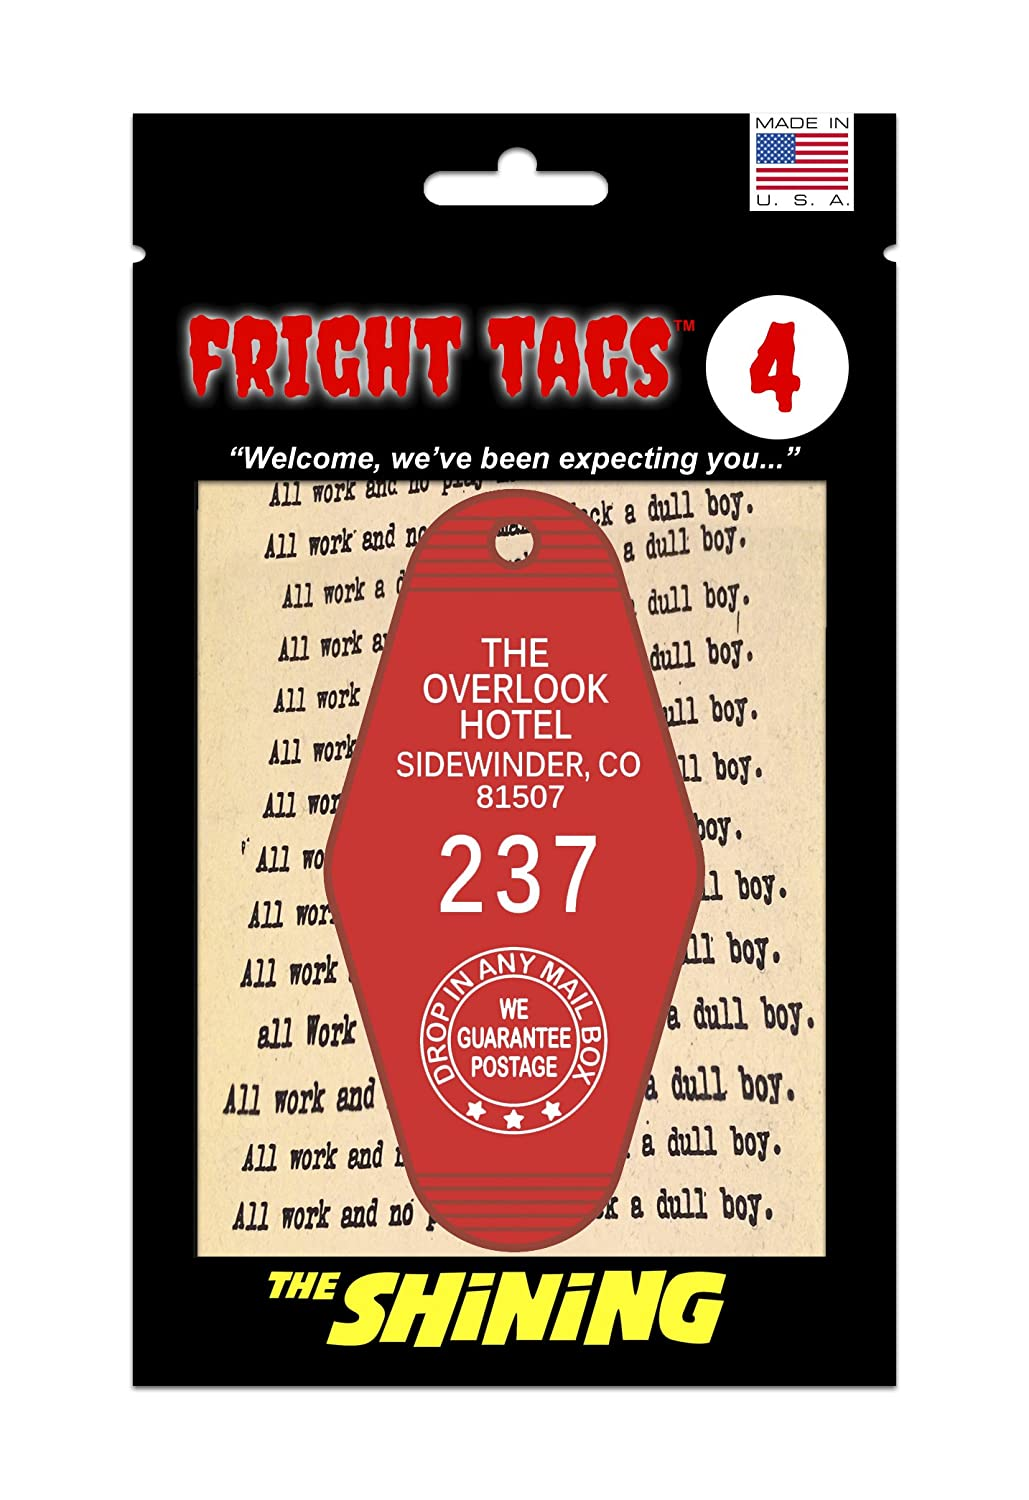 Fright Tags # 4 Key Tag - The Overlook Hotel #237 (Red) - The Shining GW and Son